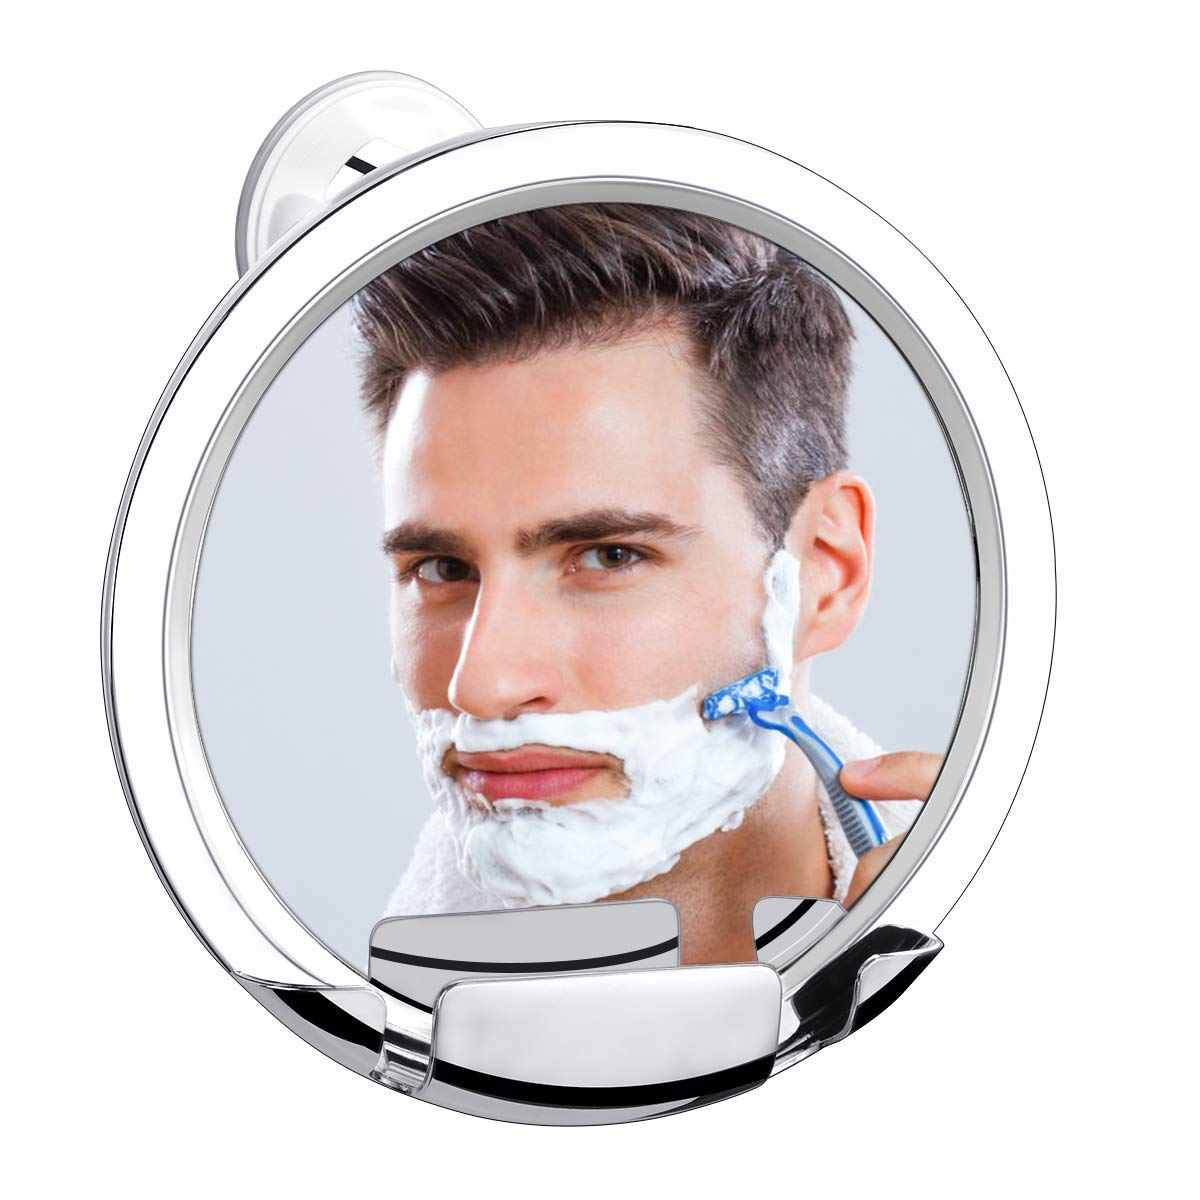 Shatterproof Fogless Shower Mirror, Fog Free Shower Shaving Mirror with Razor Holder and Strong Locking Suction, Fogless Mirror for Shower by Orange Tech, Guaranteed Not to Fog by Orange Tech